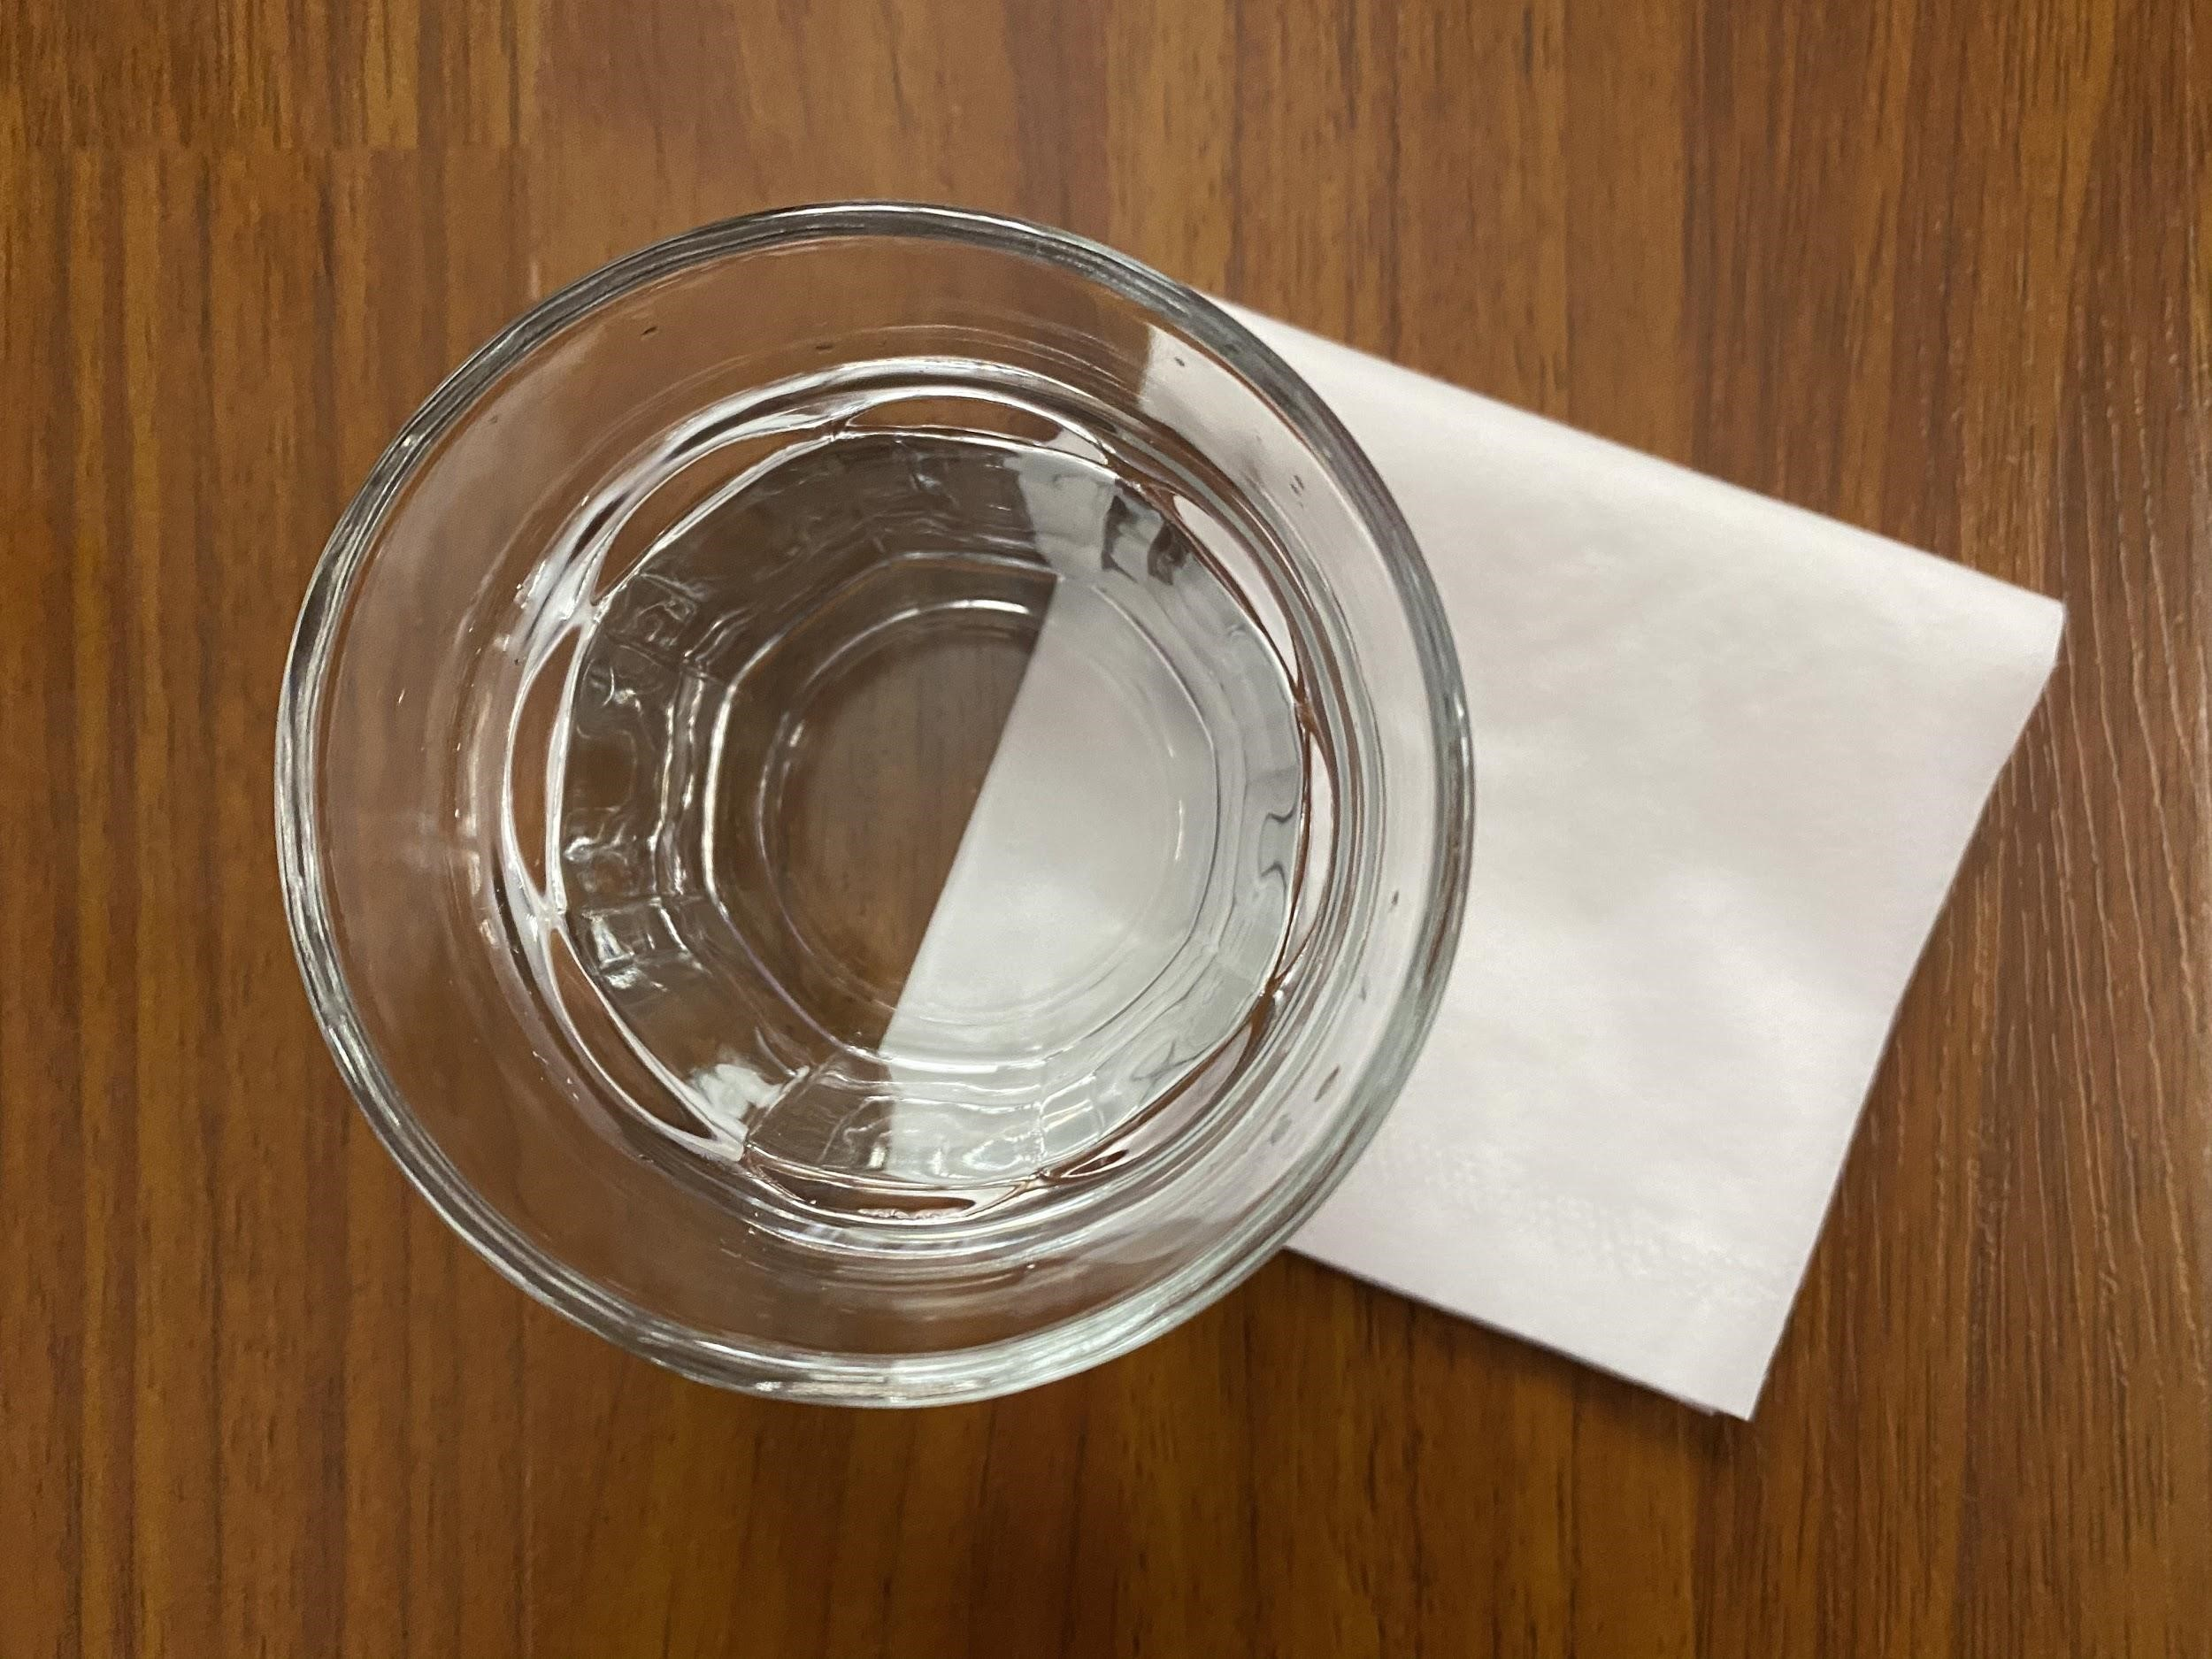 a close up of a bowl of water on a table